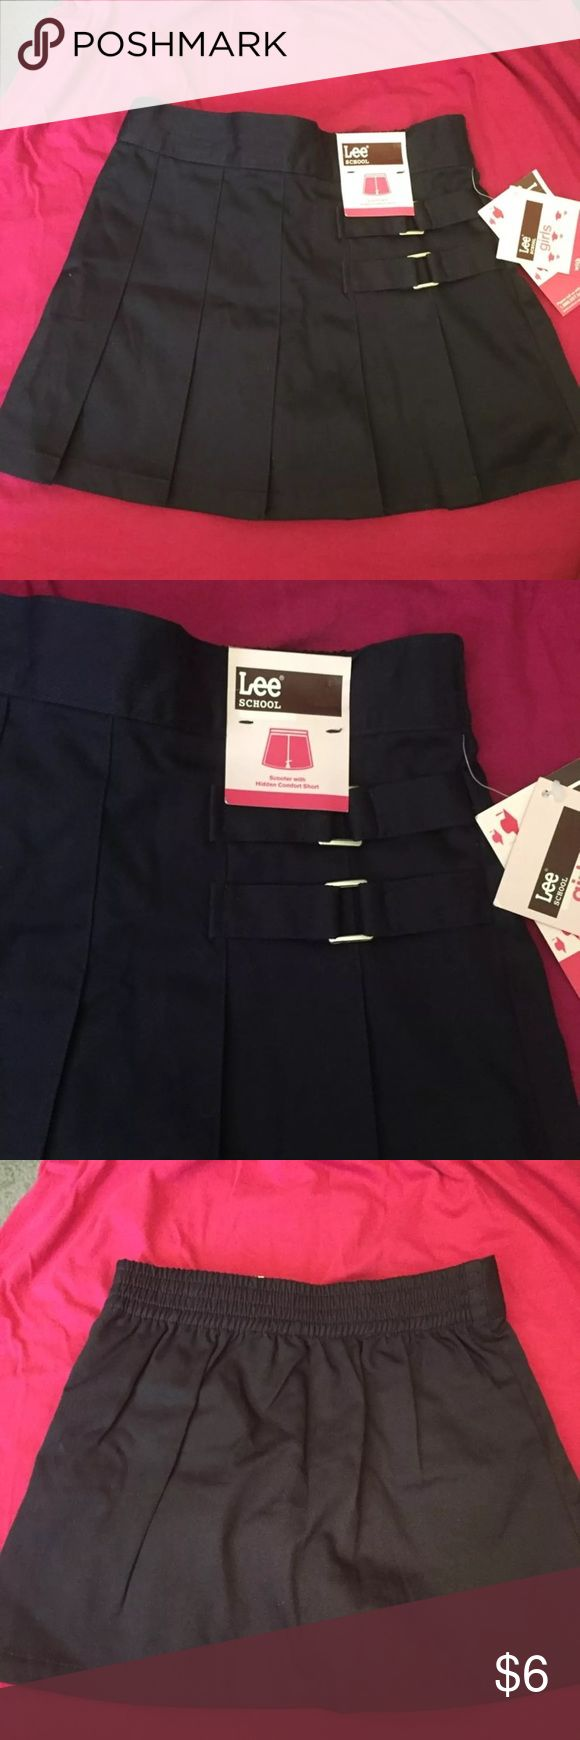 New school navy uniform skirt size 5 Navy school uniform skirt with shorts underneath. Brand-new. Size 5 Lee Bottoms Skirts